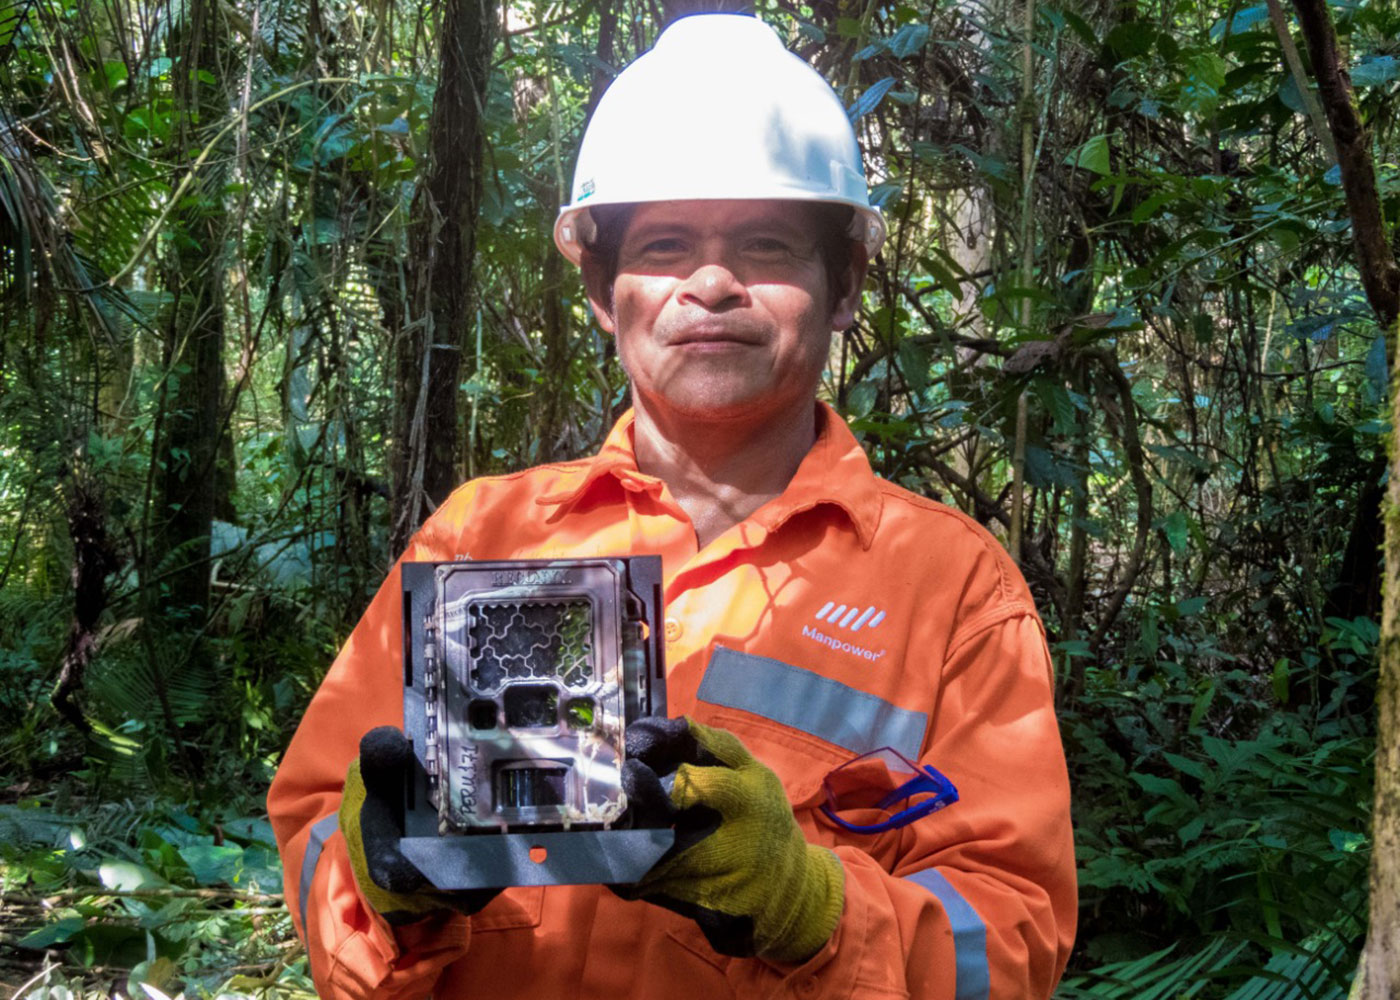 A man, named Angel Mashingash Petsa, dressed in an orange work suit and construction hat holds a camera trap device